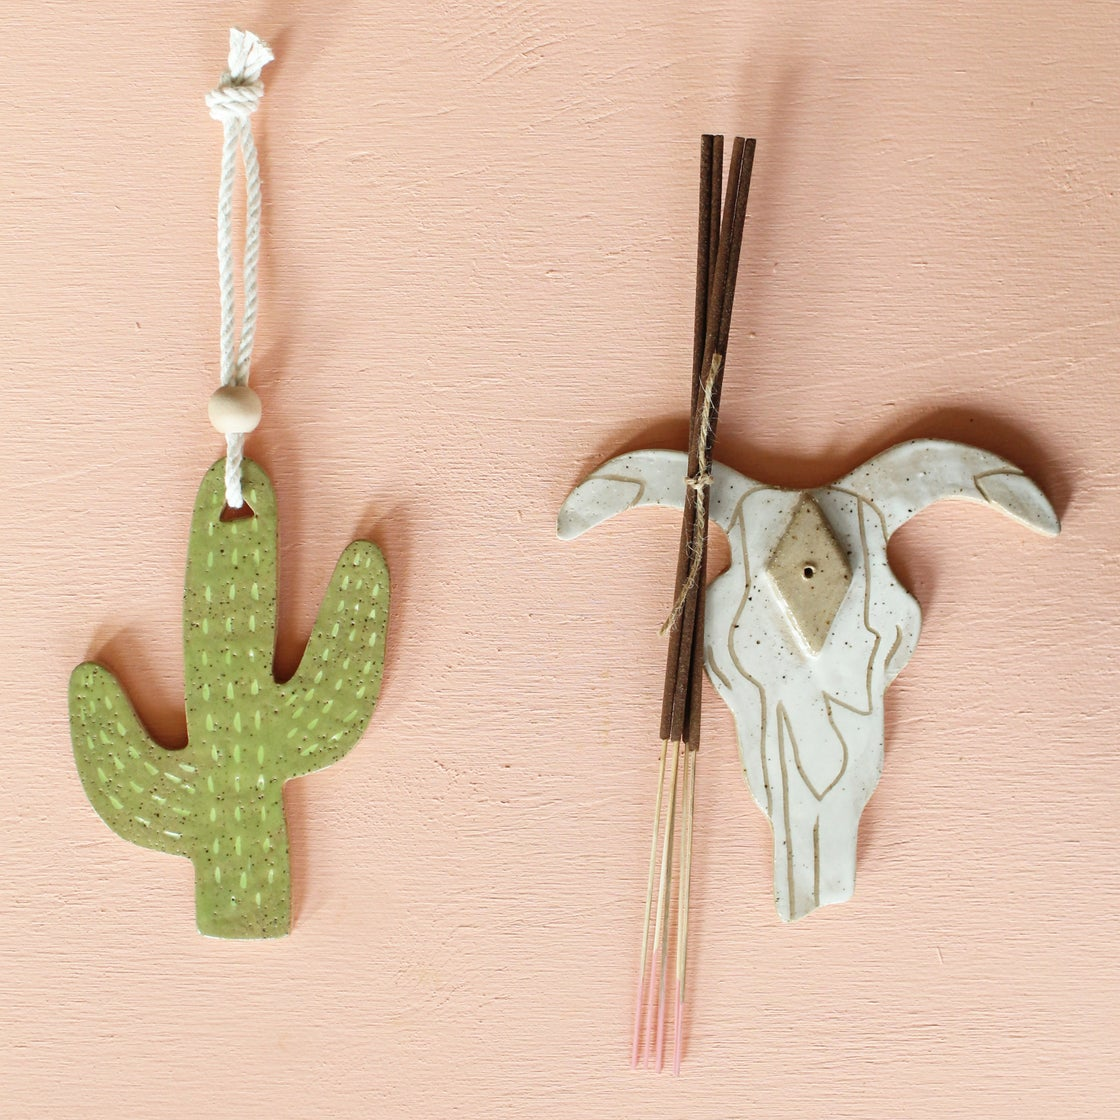 Image of Cactus Ornament - Janelle Gramling